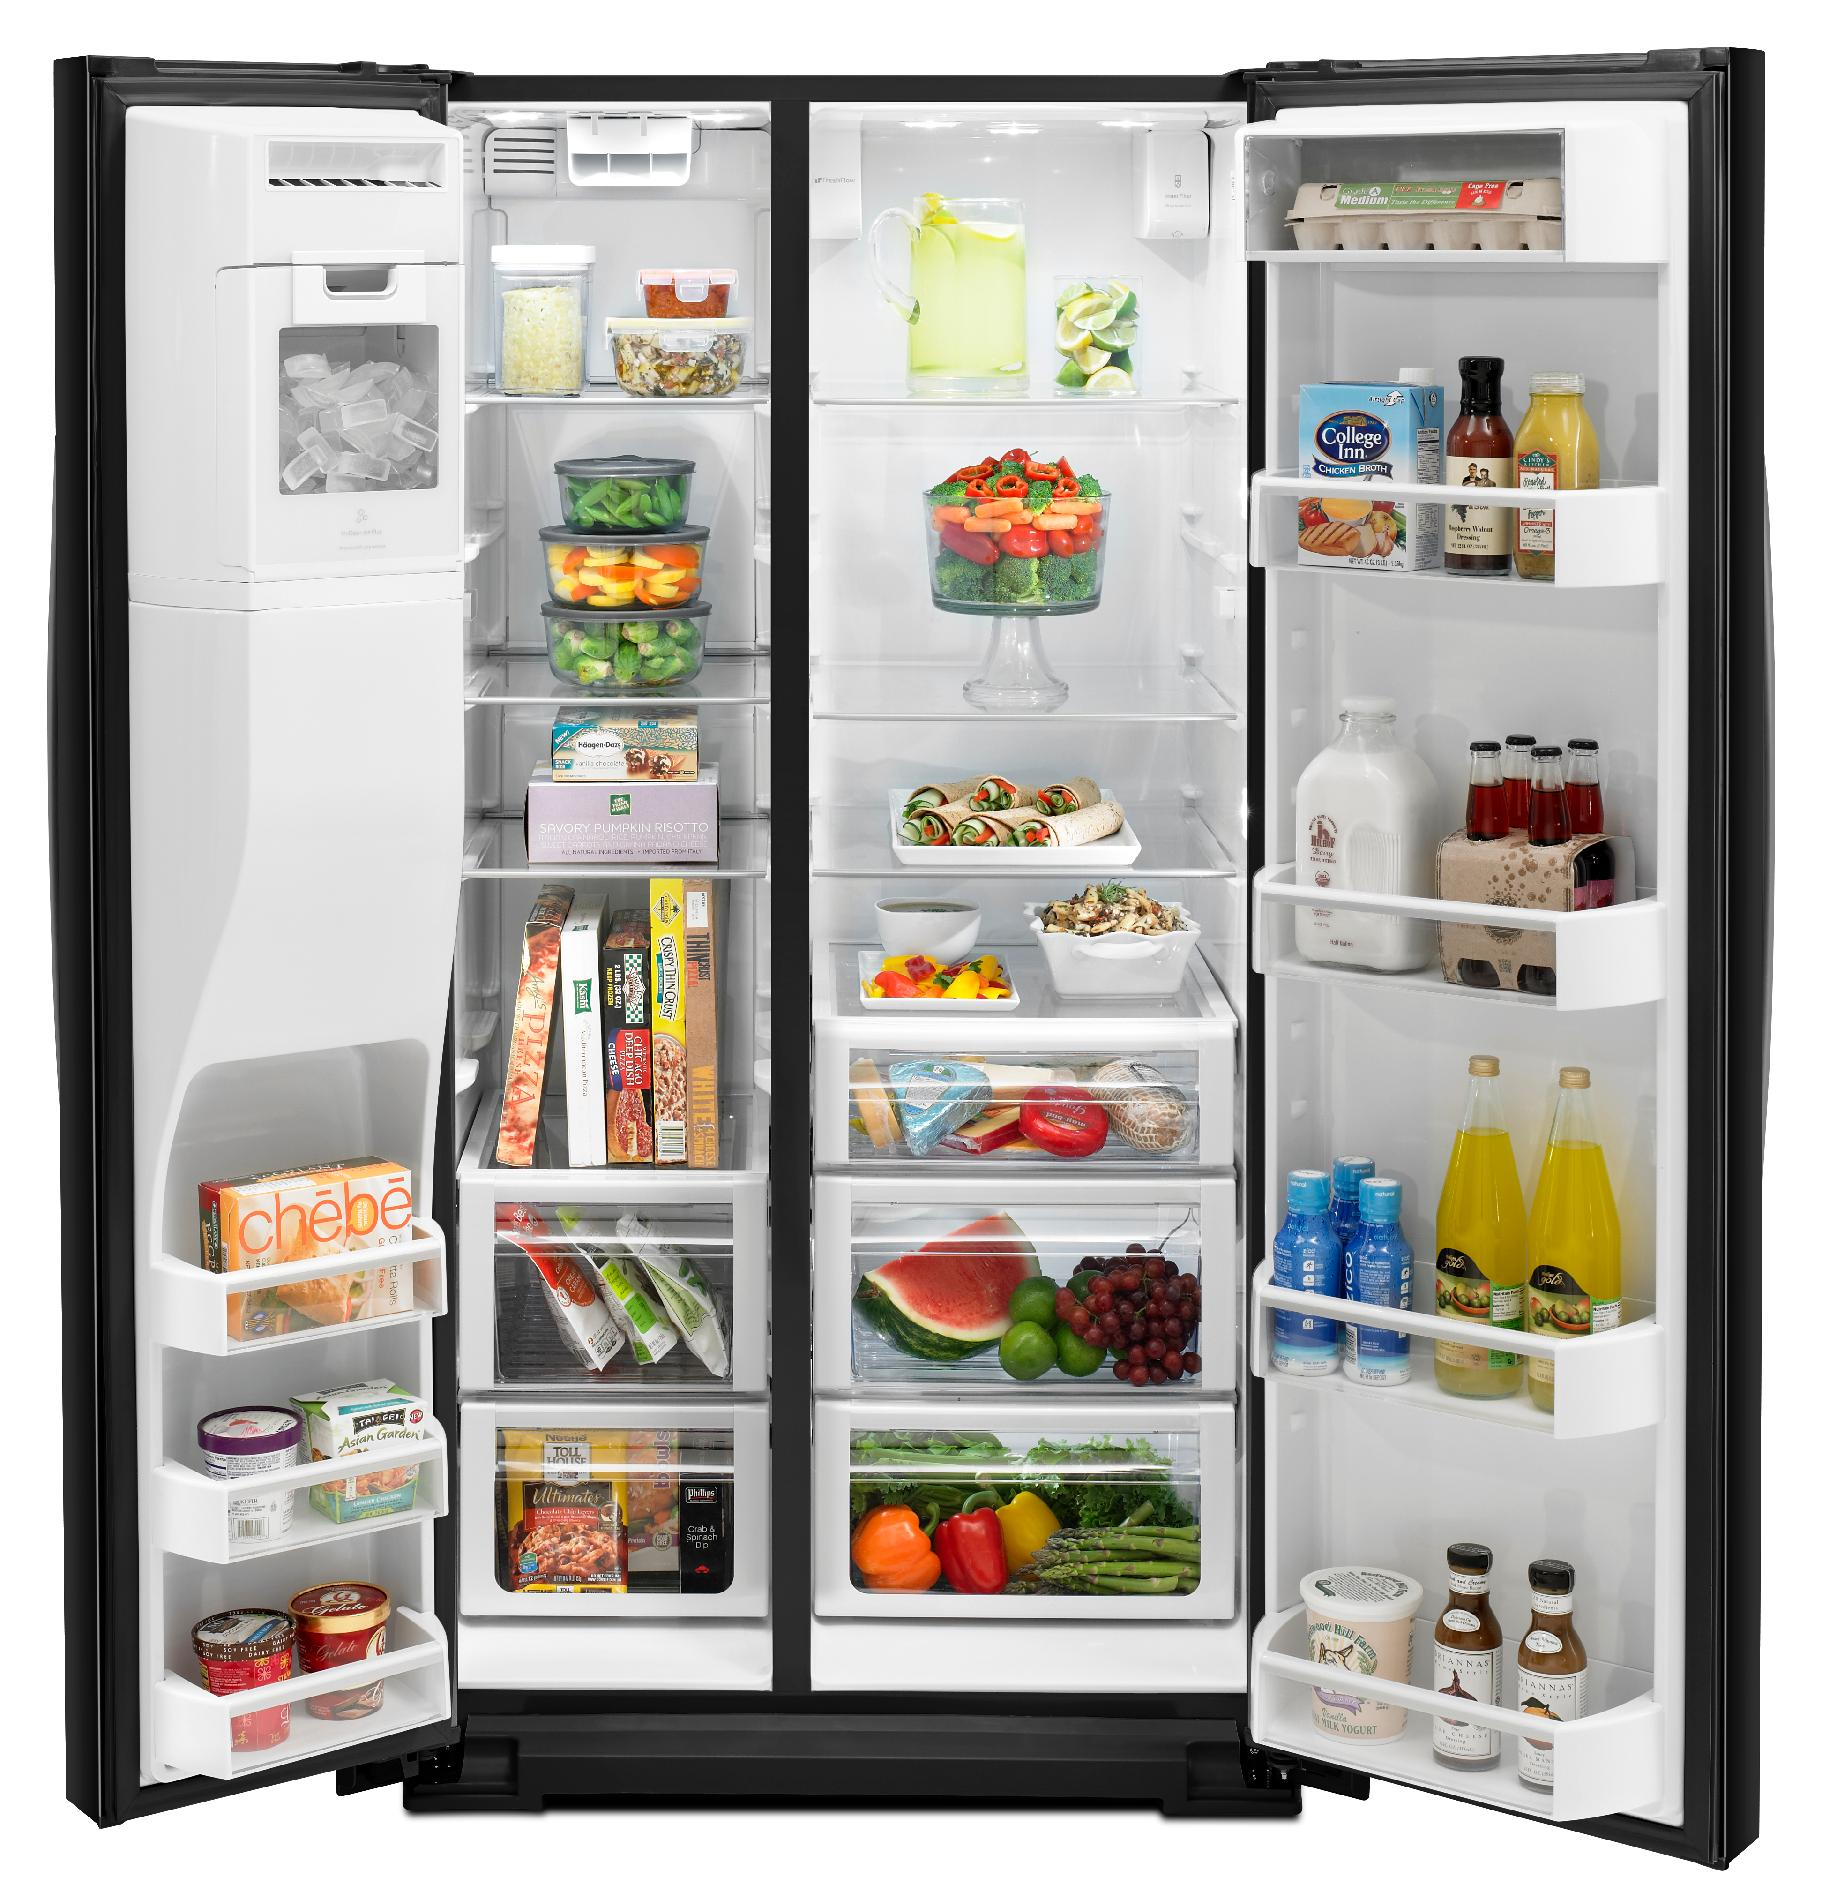 Whirlpool 29.7 cu. ft. Side-by-Side Refrigerator w/ MicroEdge® Shelves - Black